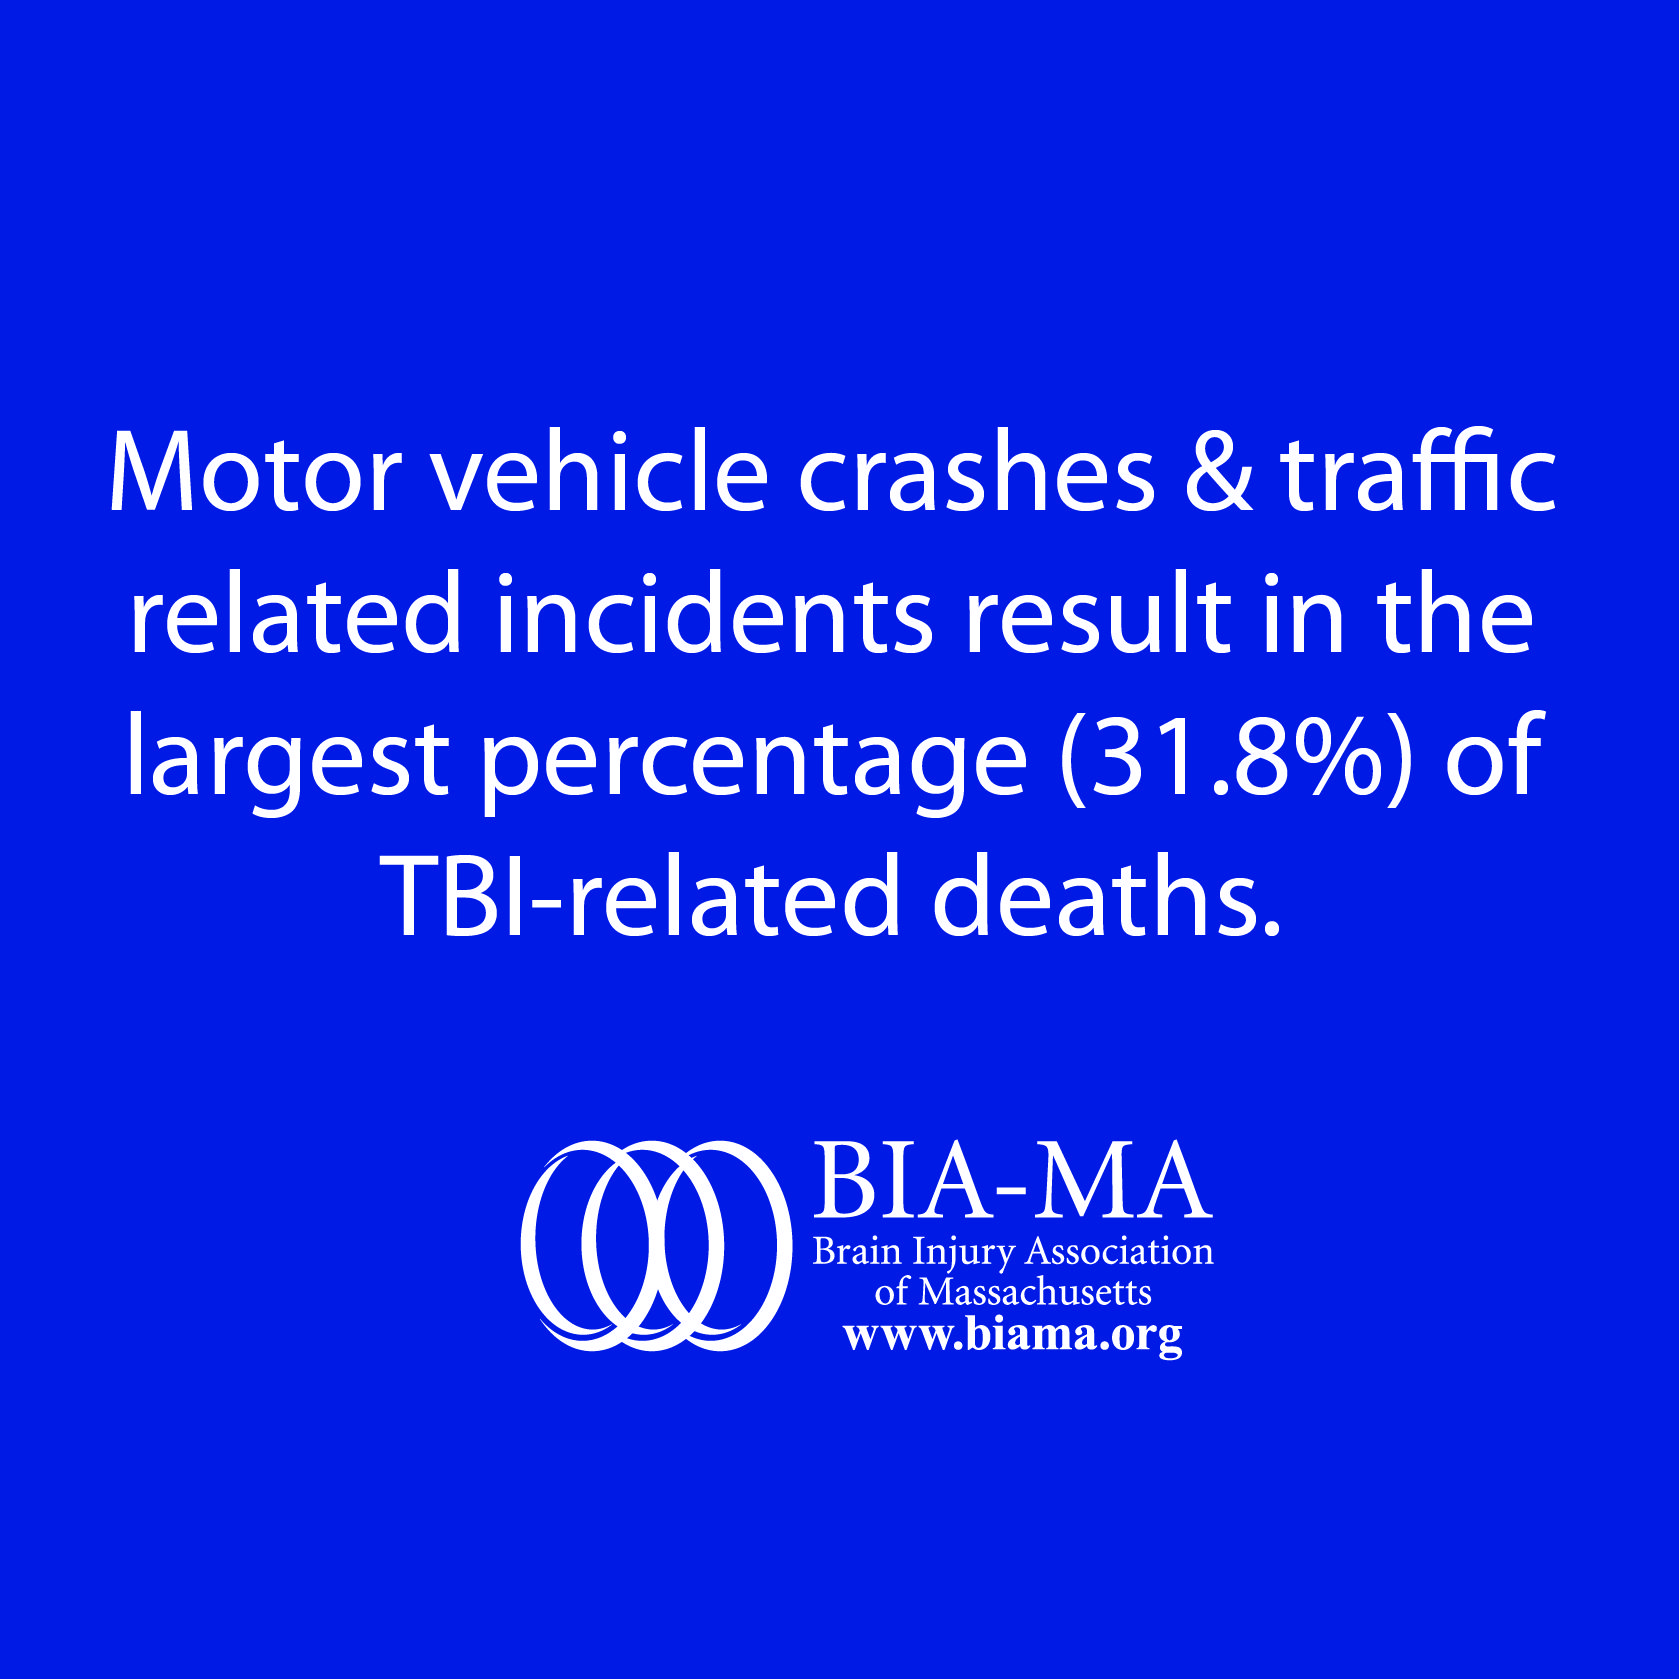 Motor vehicle crashes & traffic-related incidents result in the largest percentage (31.8%) of #TBI related deaths.